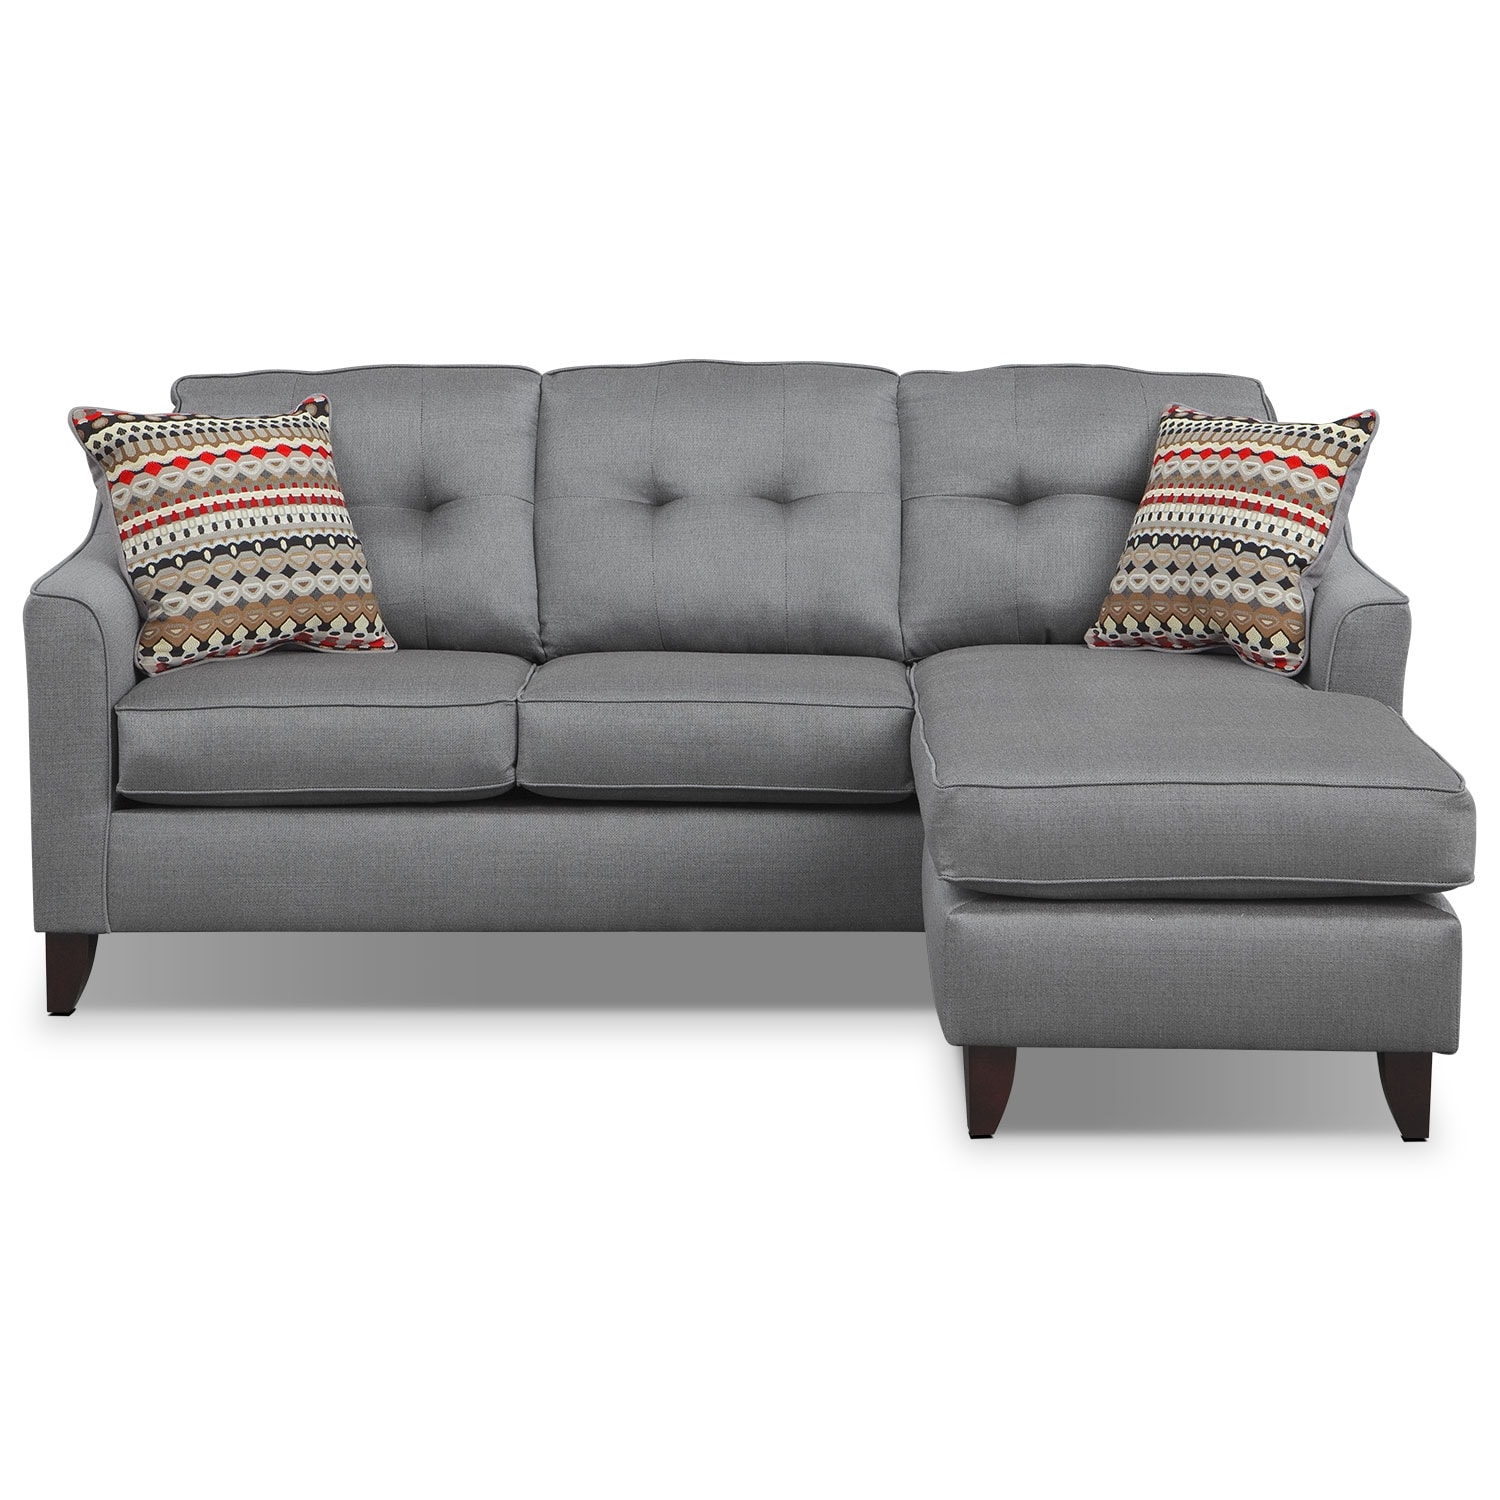 value city furniture marco chaise sofa leather vs fabric gray with using sectional sofas